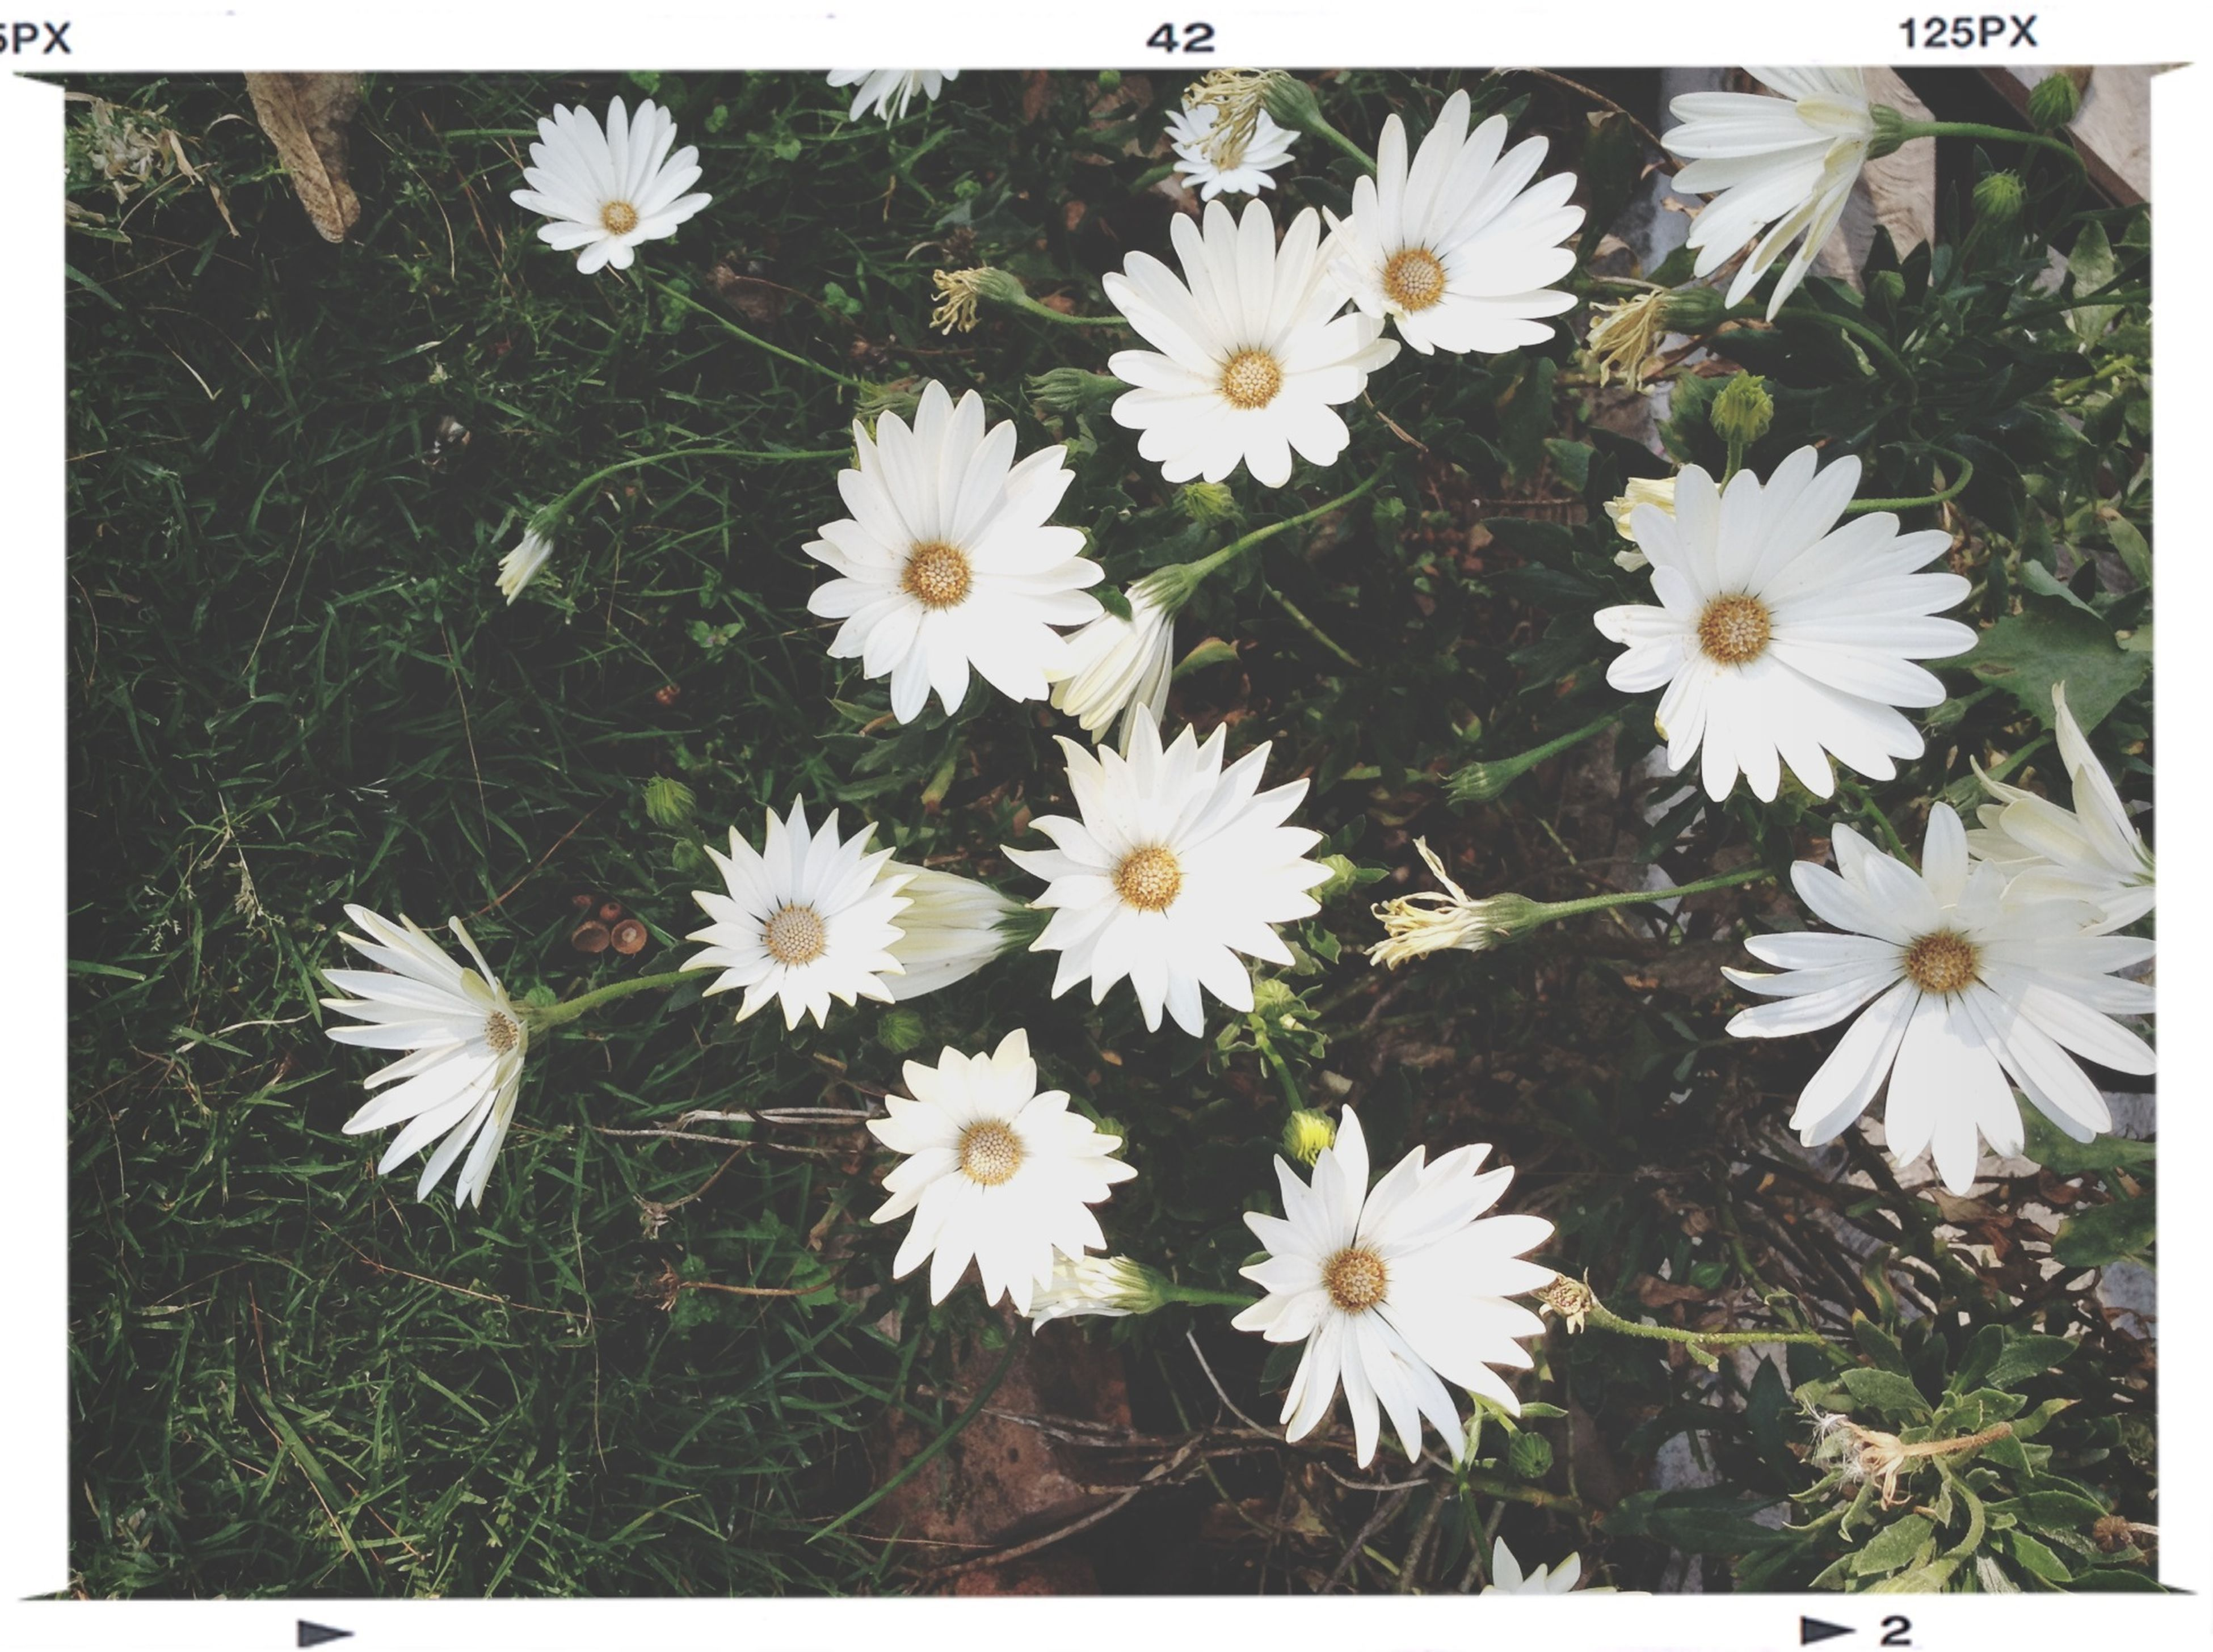 flower, white color, daisy, fragility, freshness, growth, petal, flower head, high angle view, beauty in nature, field, nature, transfer print, plant, blooming, white, grass, auto post production filter, pollen, close-up